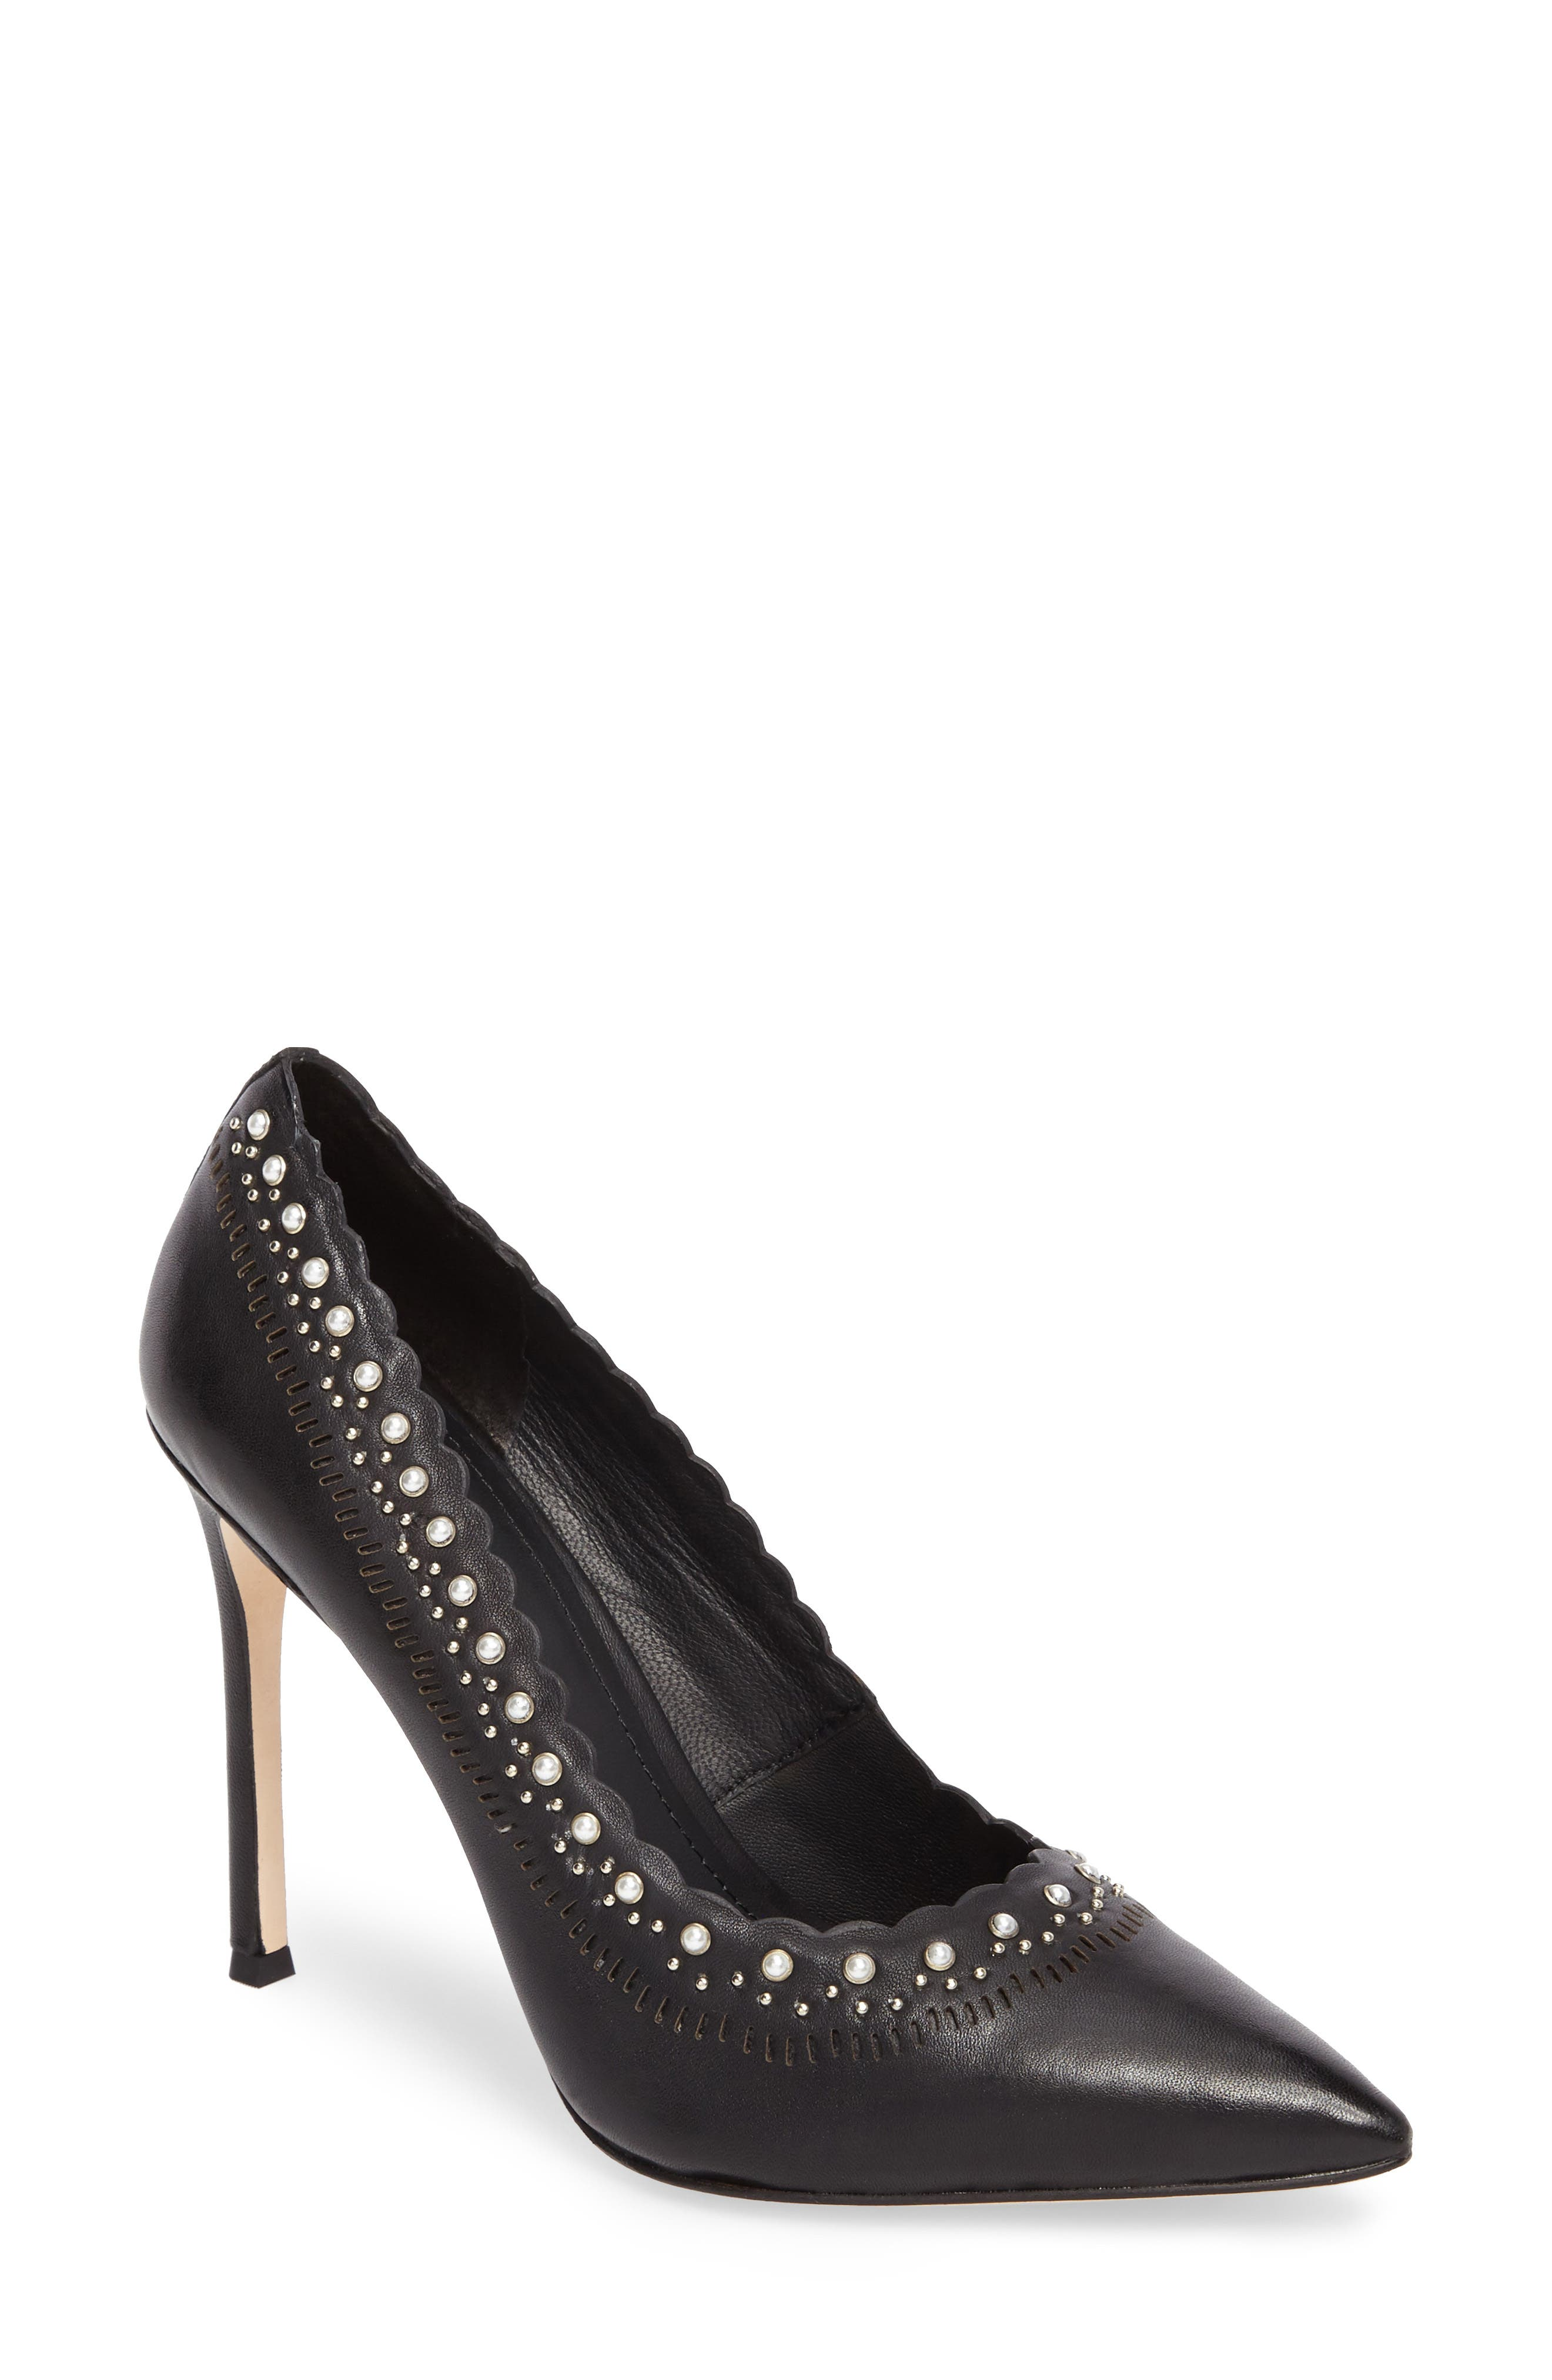 Cerella Embellished Pump,                             Main thumbnail 1, color,                             Black Leather